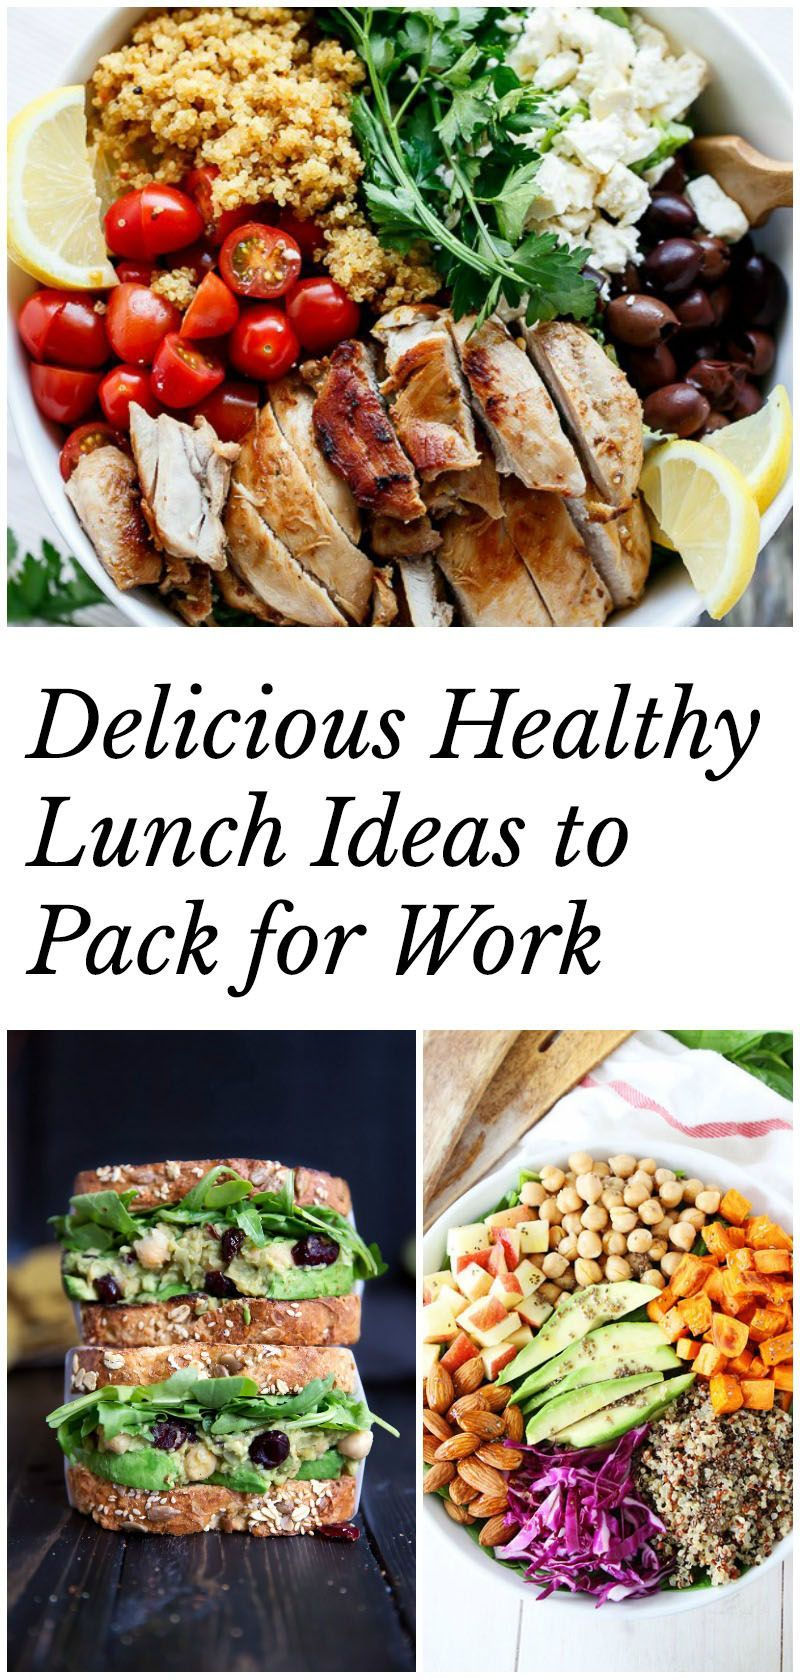 Lunch Ideas to Pack for Work (40+ recipes!) Delicious healthy lunch ideas to pack for work! Plenty of salad & sandwich recipes to keep you inspired in the kitchen. Delicious healthy lunch ideas to pack for work! Plenty of salad & sandwich recipes to keep you inspired in the kitchen.